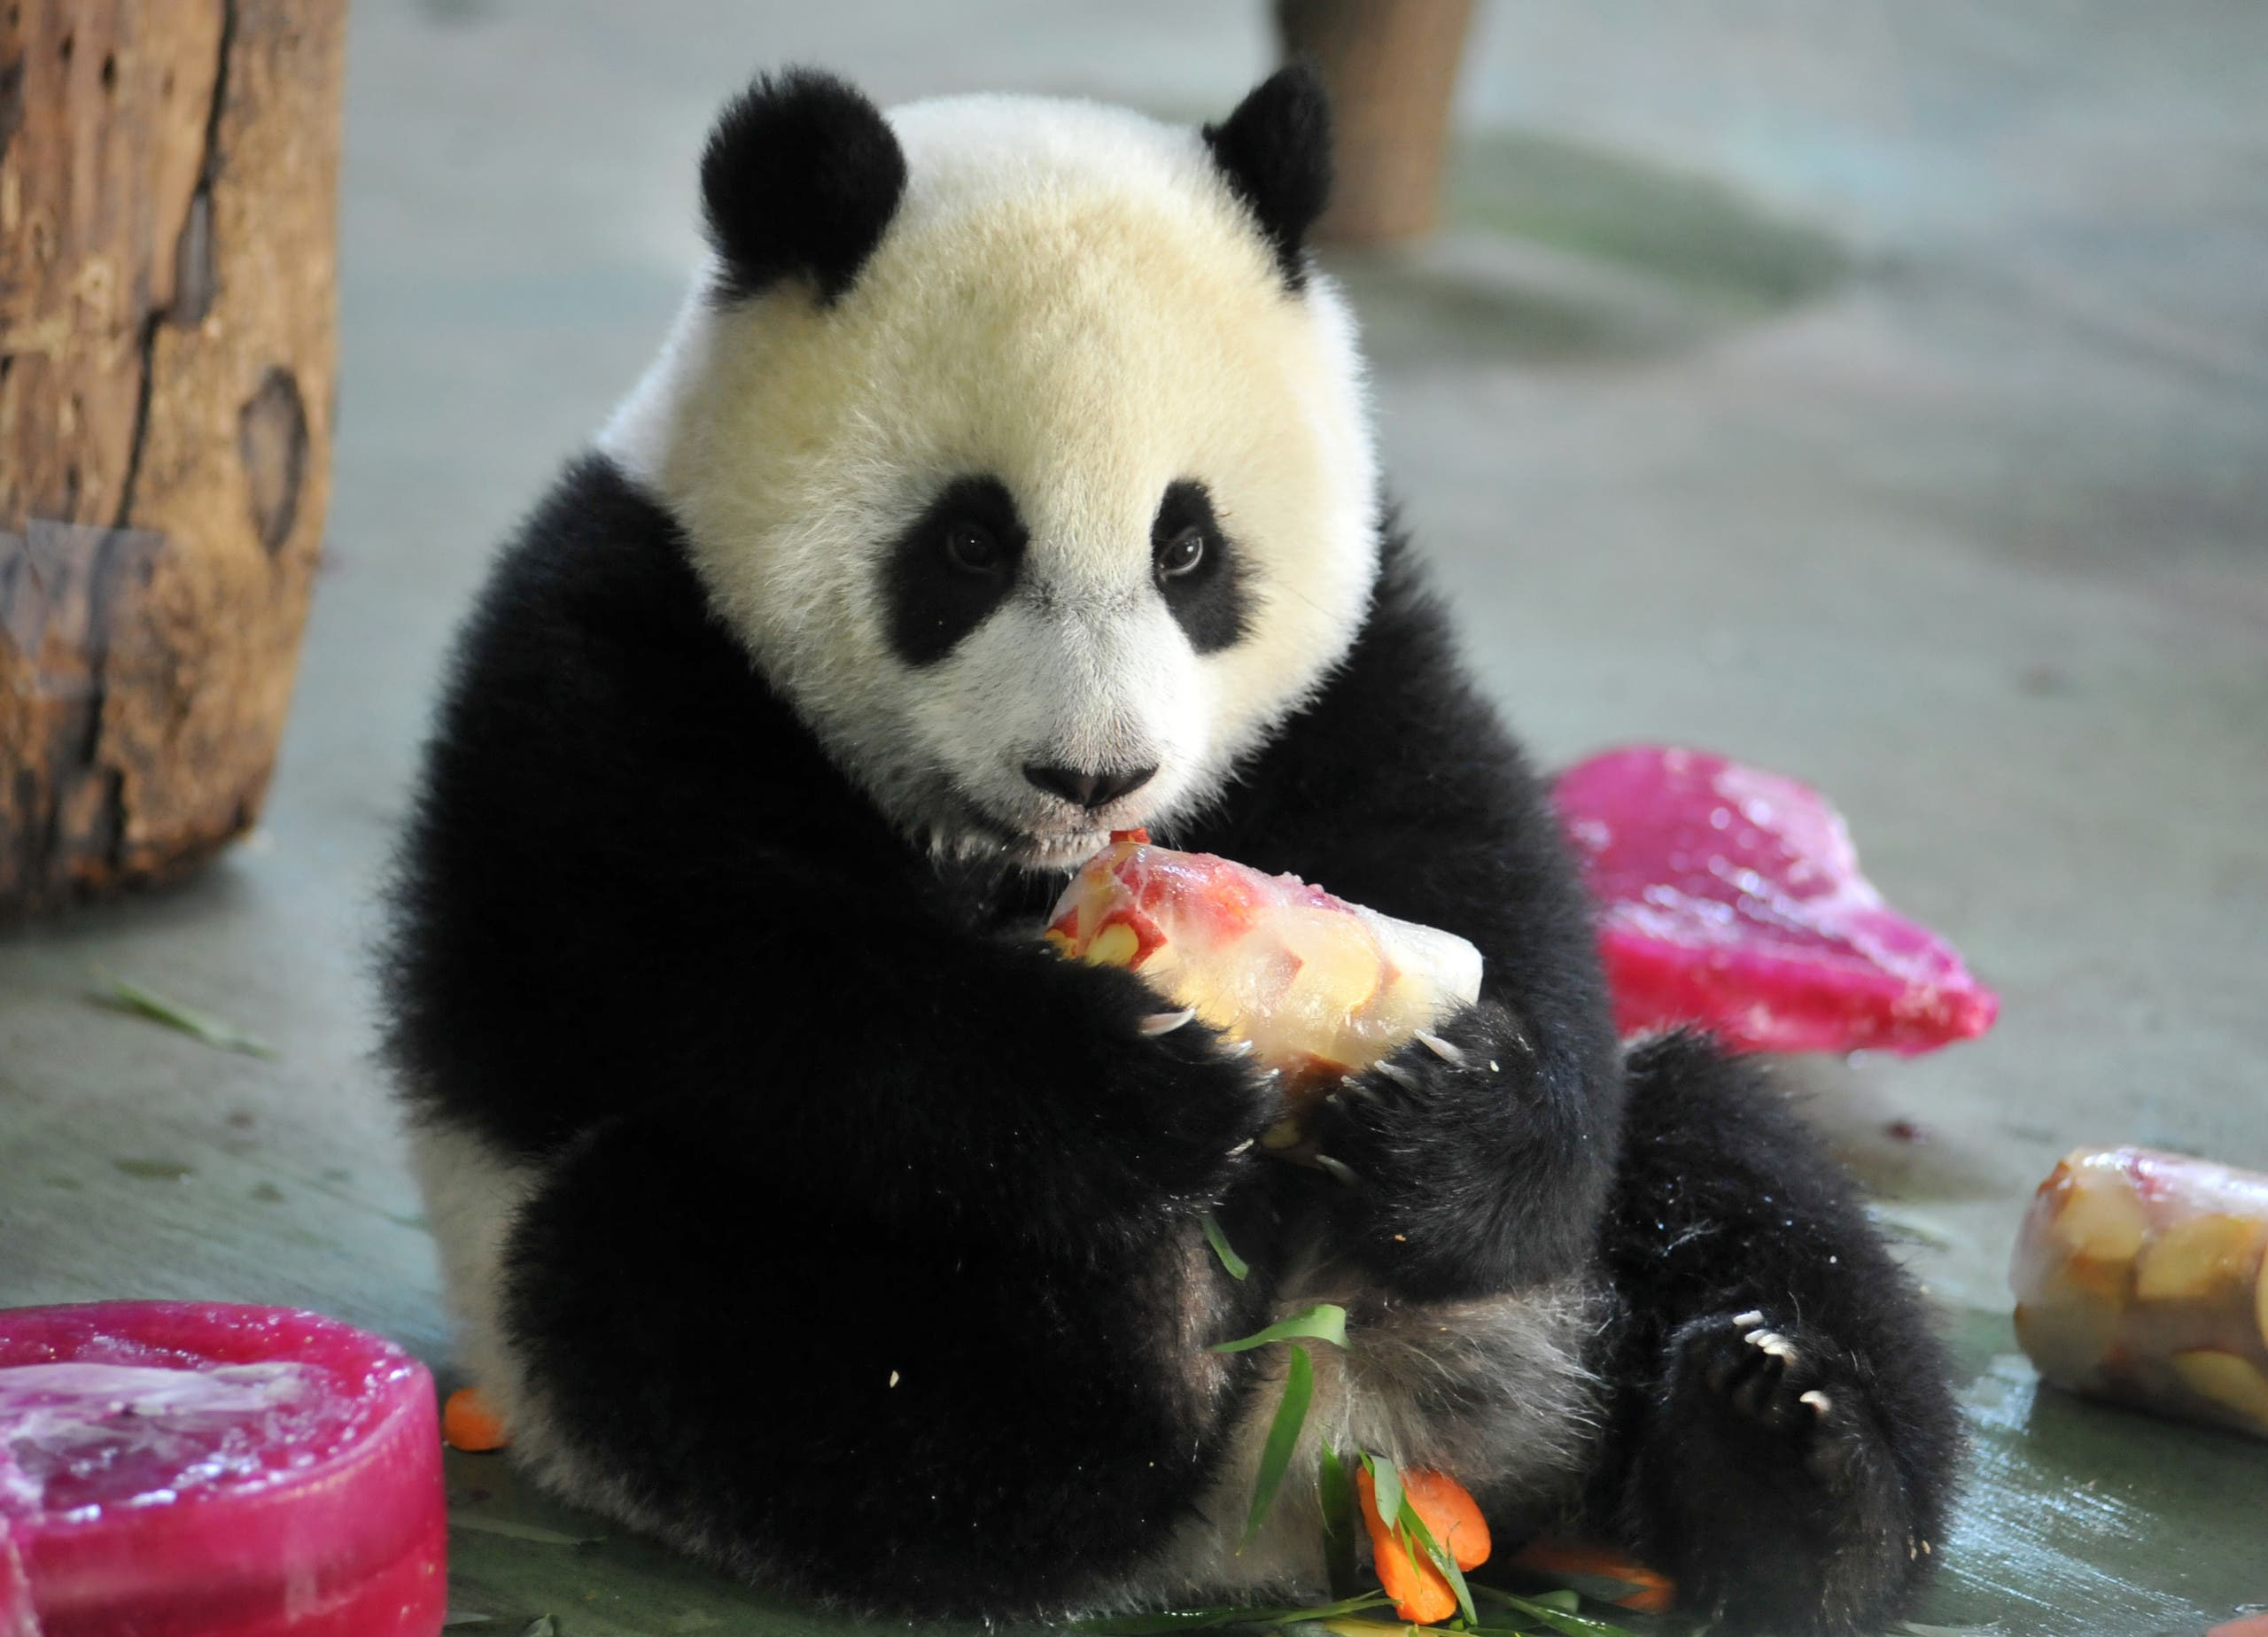 Yuan Zai , the first Taiwan-born baby panda, enjoys her birthday cake, during the celebration of her first birthday at the Taipei City Zoo on July 6, 2014. (AFP)